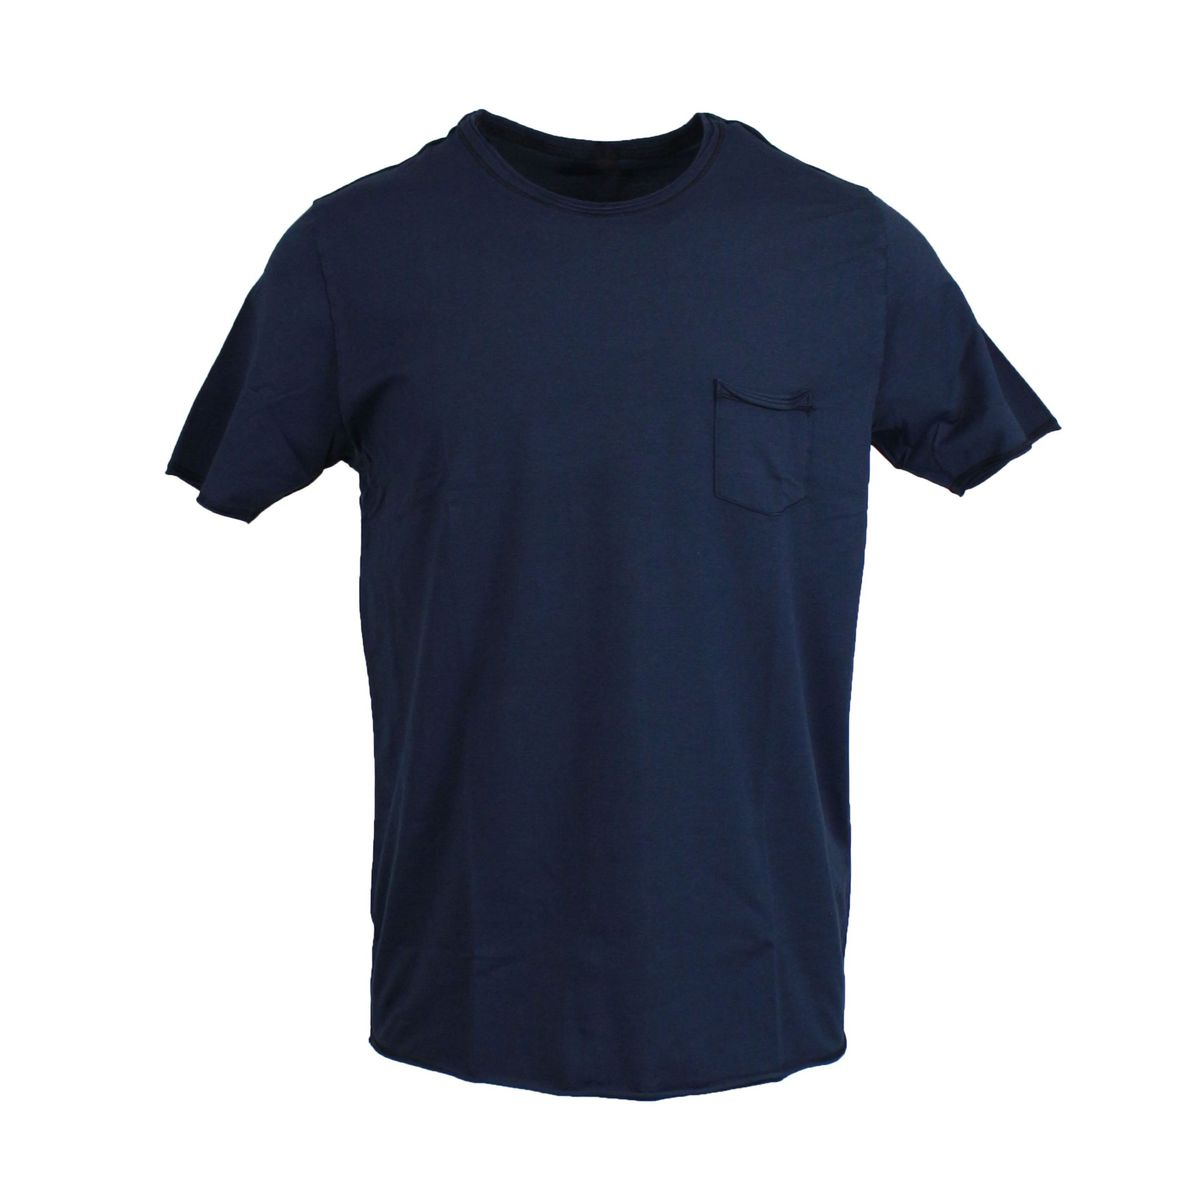 crewneck t-shirt with pocket Blue GRAN SASSO